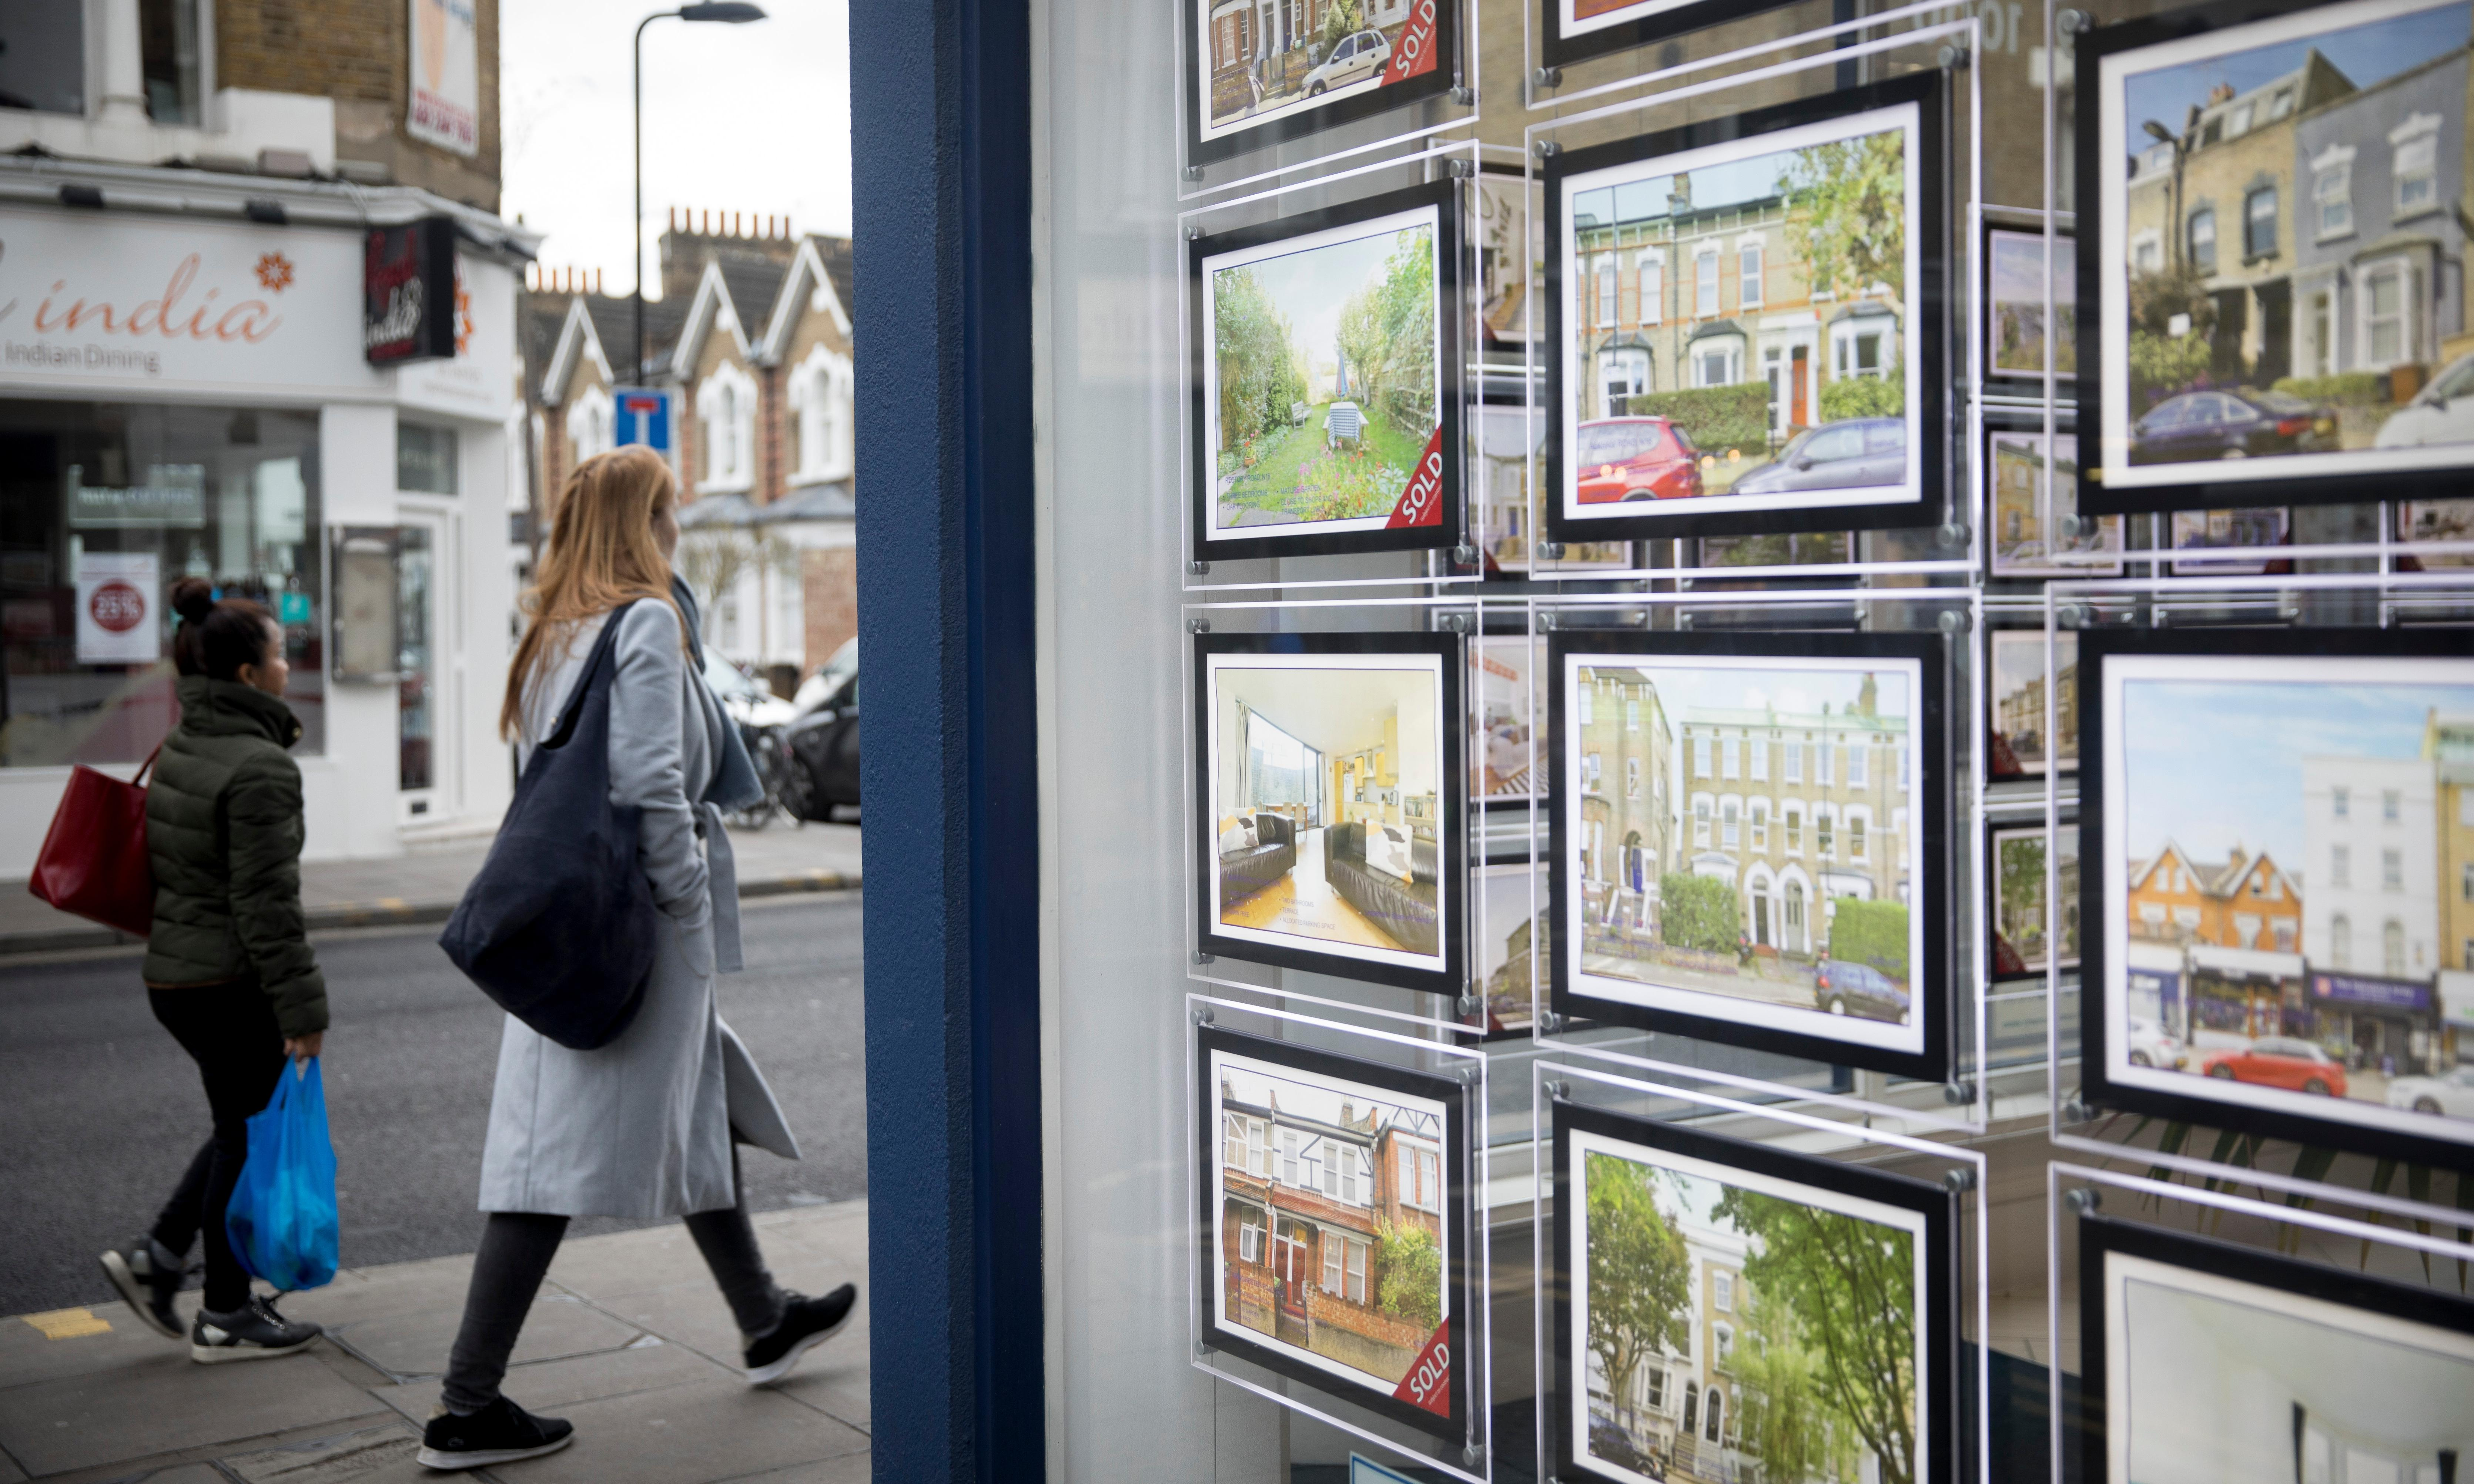 House price growth at six-year low and inflation rises to 1.9%